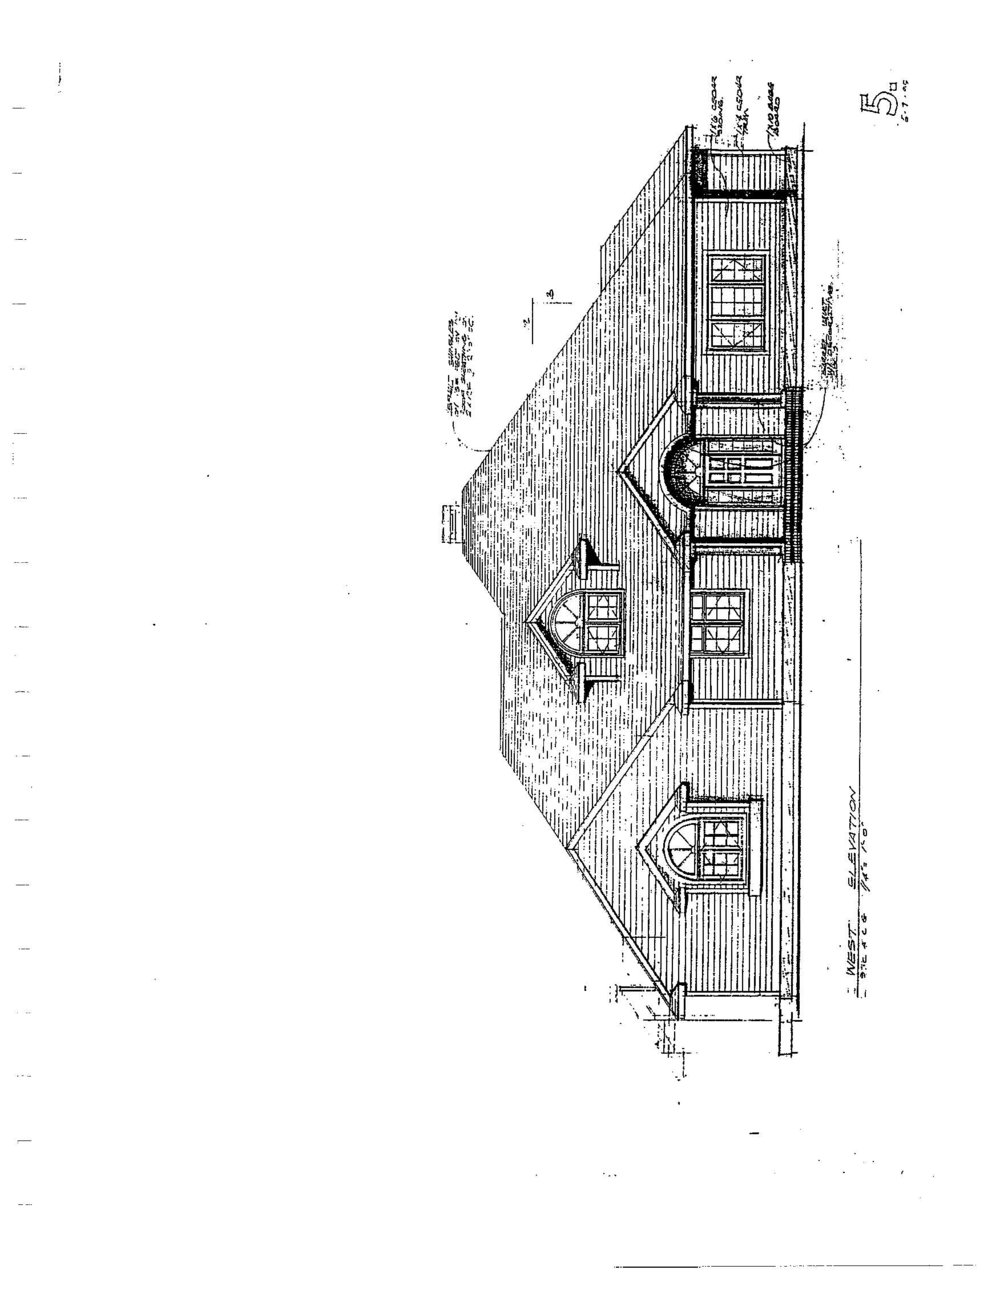 424 N School Hill Court, Suttons Bay real estate for sale by Oltersdorf Realty LLC - Information packet (24).jpg